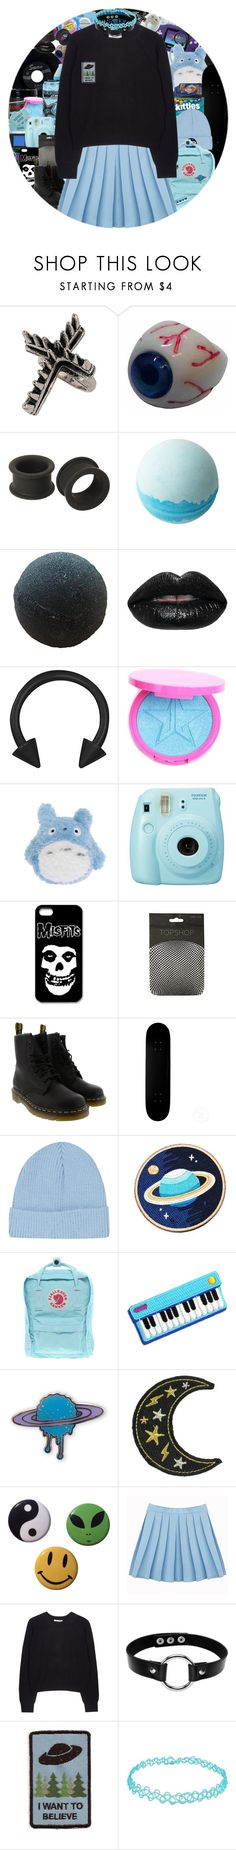 """stressed and depressed :))))))"" by chemicalfallout249 ❤ liked on Polyvore featuring CASSETTE, Topshop, Kreepsville 666, KAOS, Disney, CHESTERFIELD, Manic Panic NYC, Hot Topic, Fujifilm and Dr. Martens"